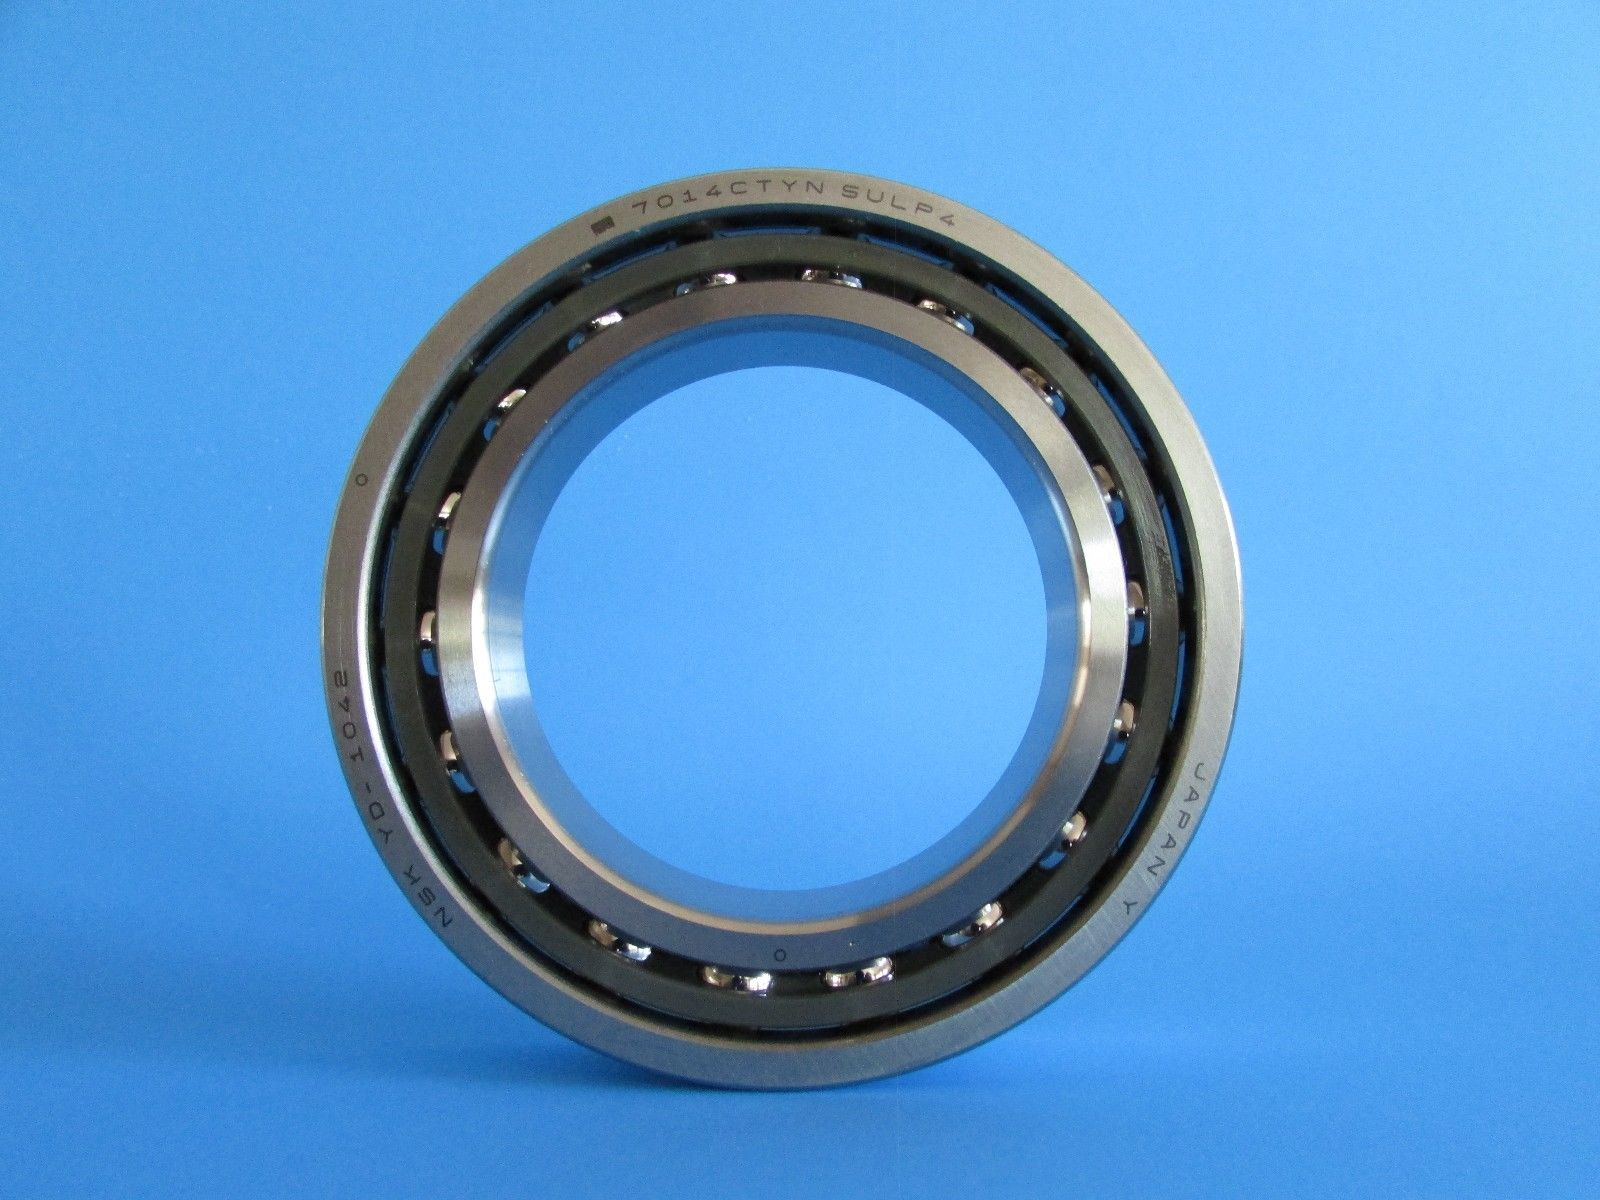 high temperature NSK7014CTYNSUL P4 Abec-7 Super Precision Angular Contact. can be match to pair